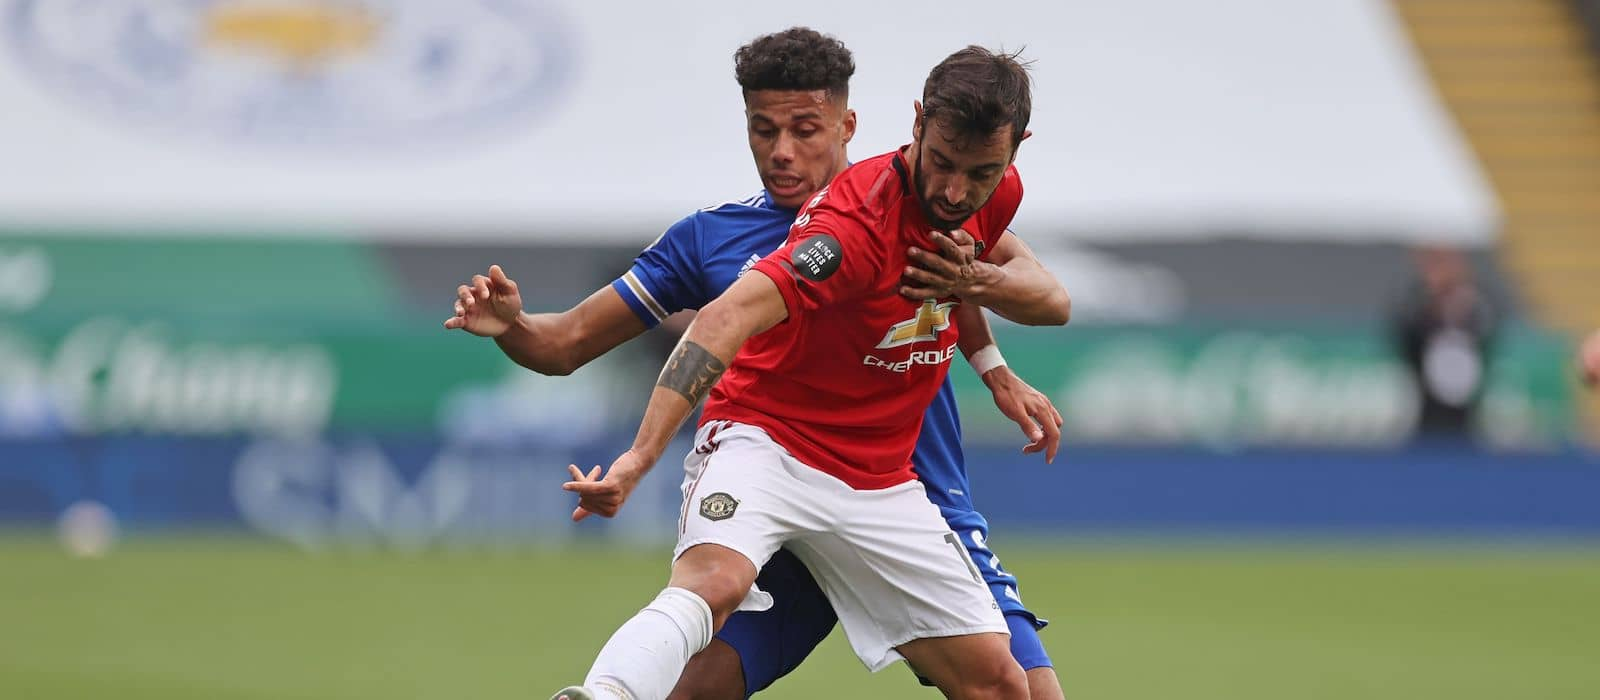 Bruno Fernandes backs Jesse Lingard after scoring vs Leicester City